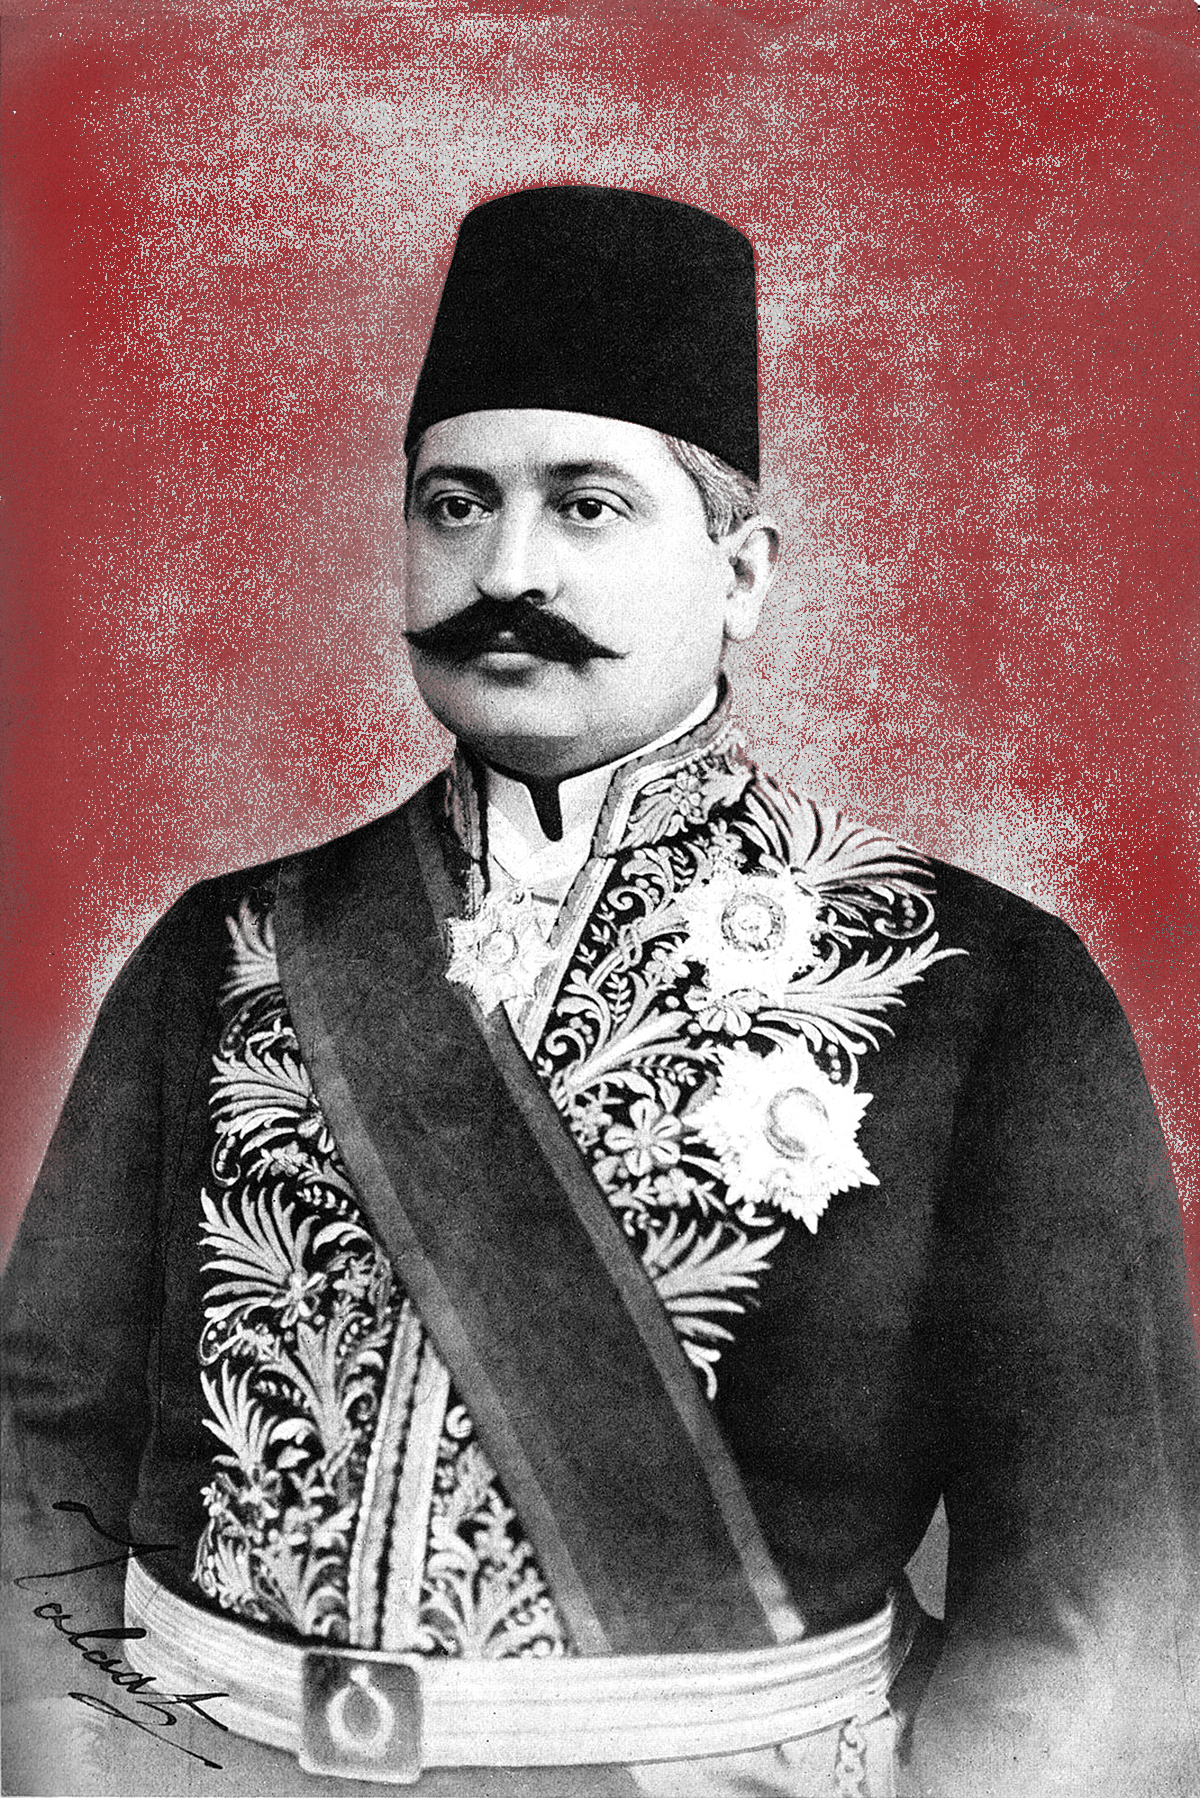 Talaat Pasha's report is the official view of the Armenian Genocide according to Ottoman records